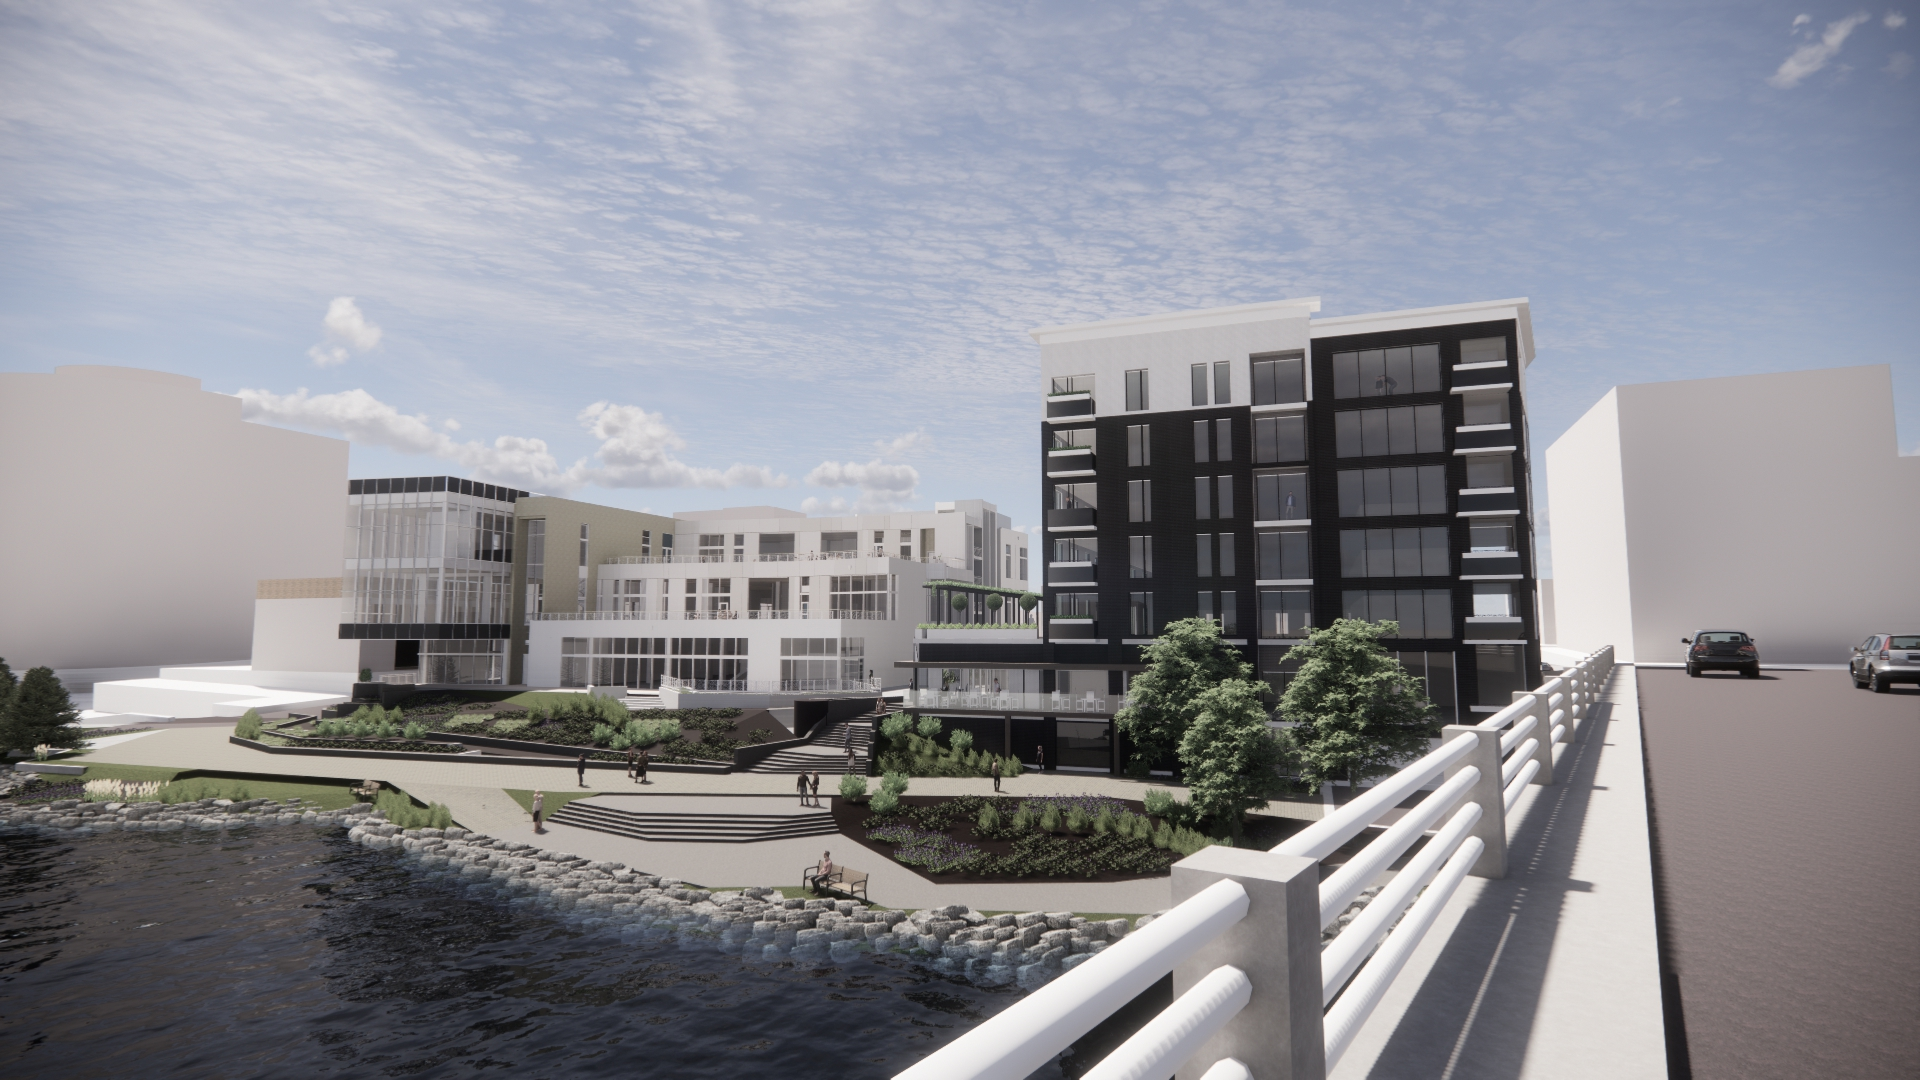 Exterior rendering of Library Lofts Development on the Rock River in downtown Rockford